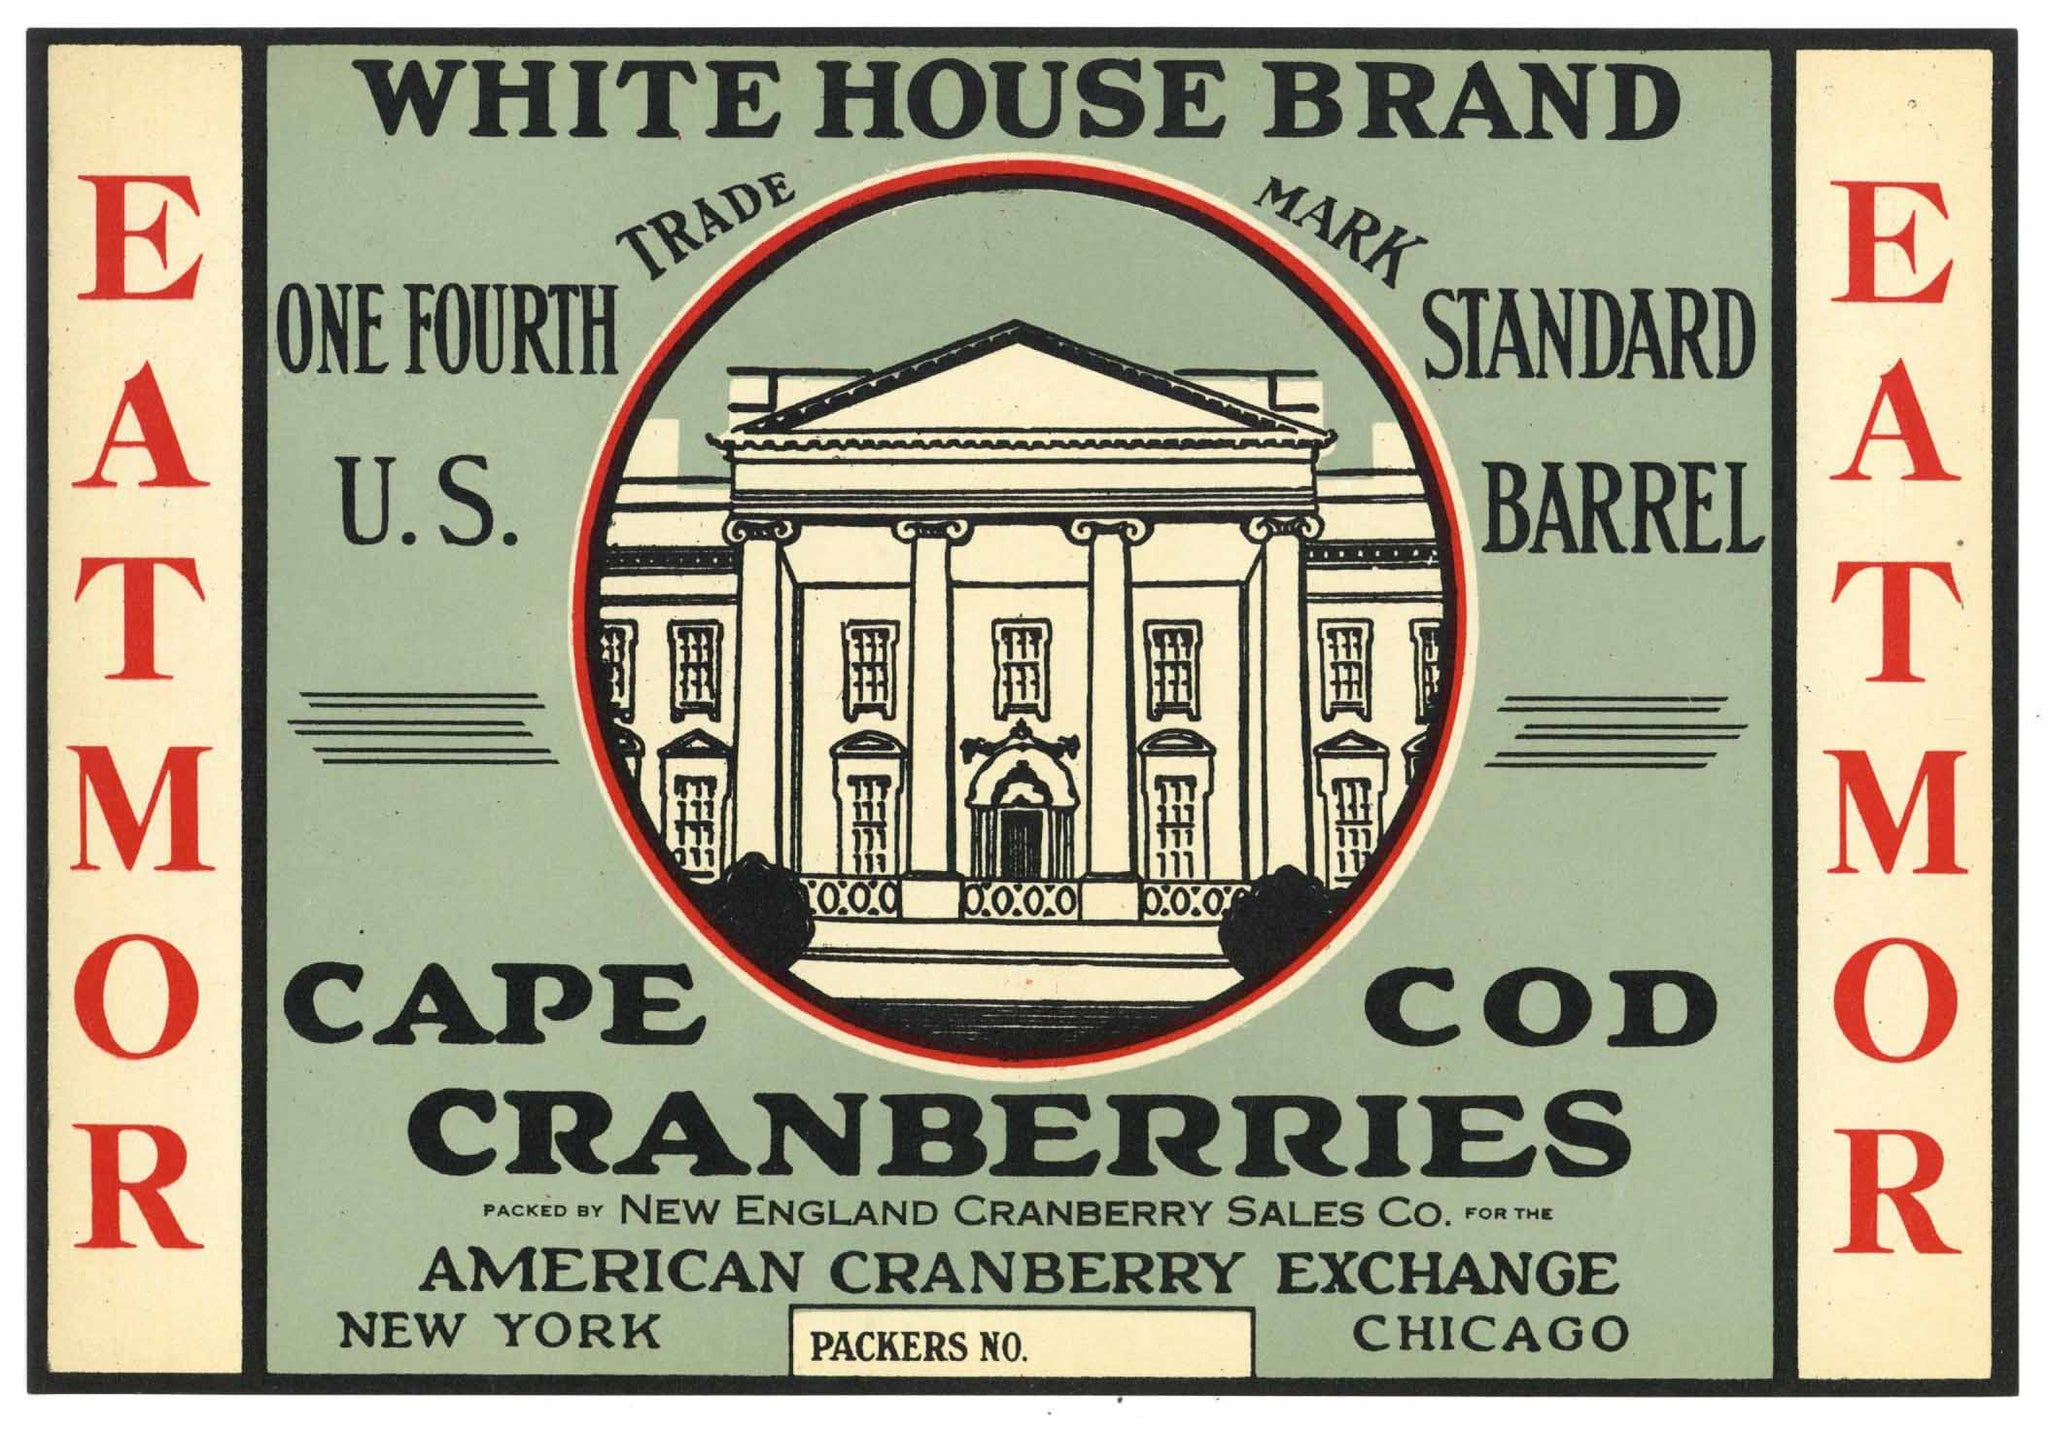 White House Brand Vintage Cape Cod Cranberry Crate Label, 1/4